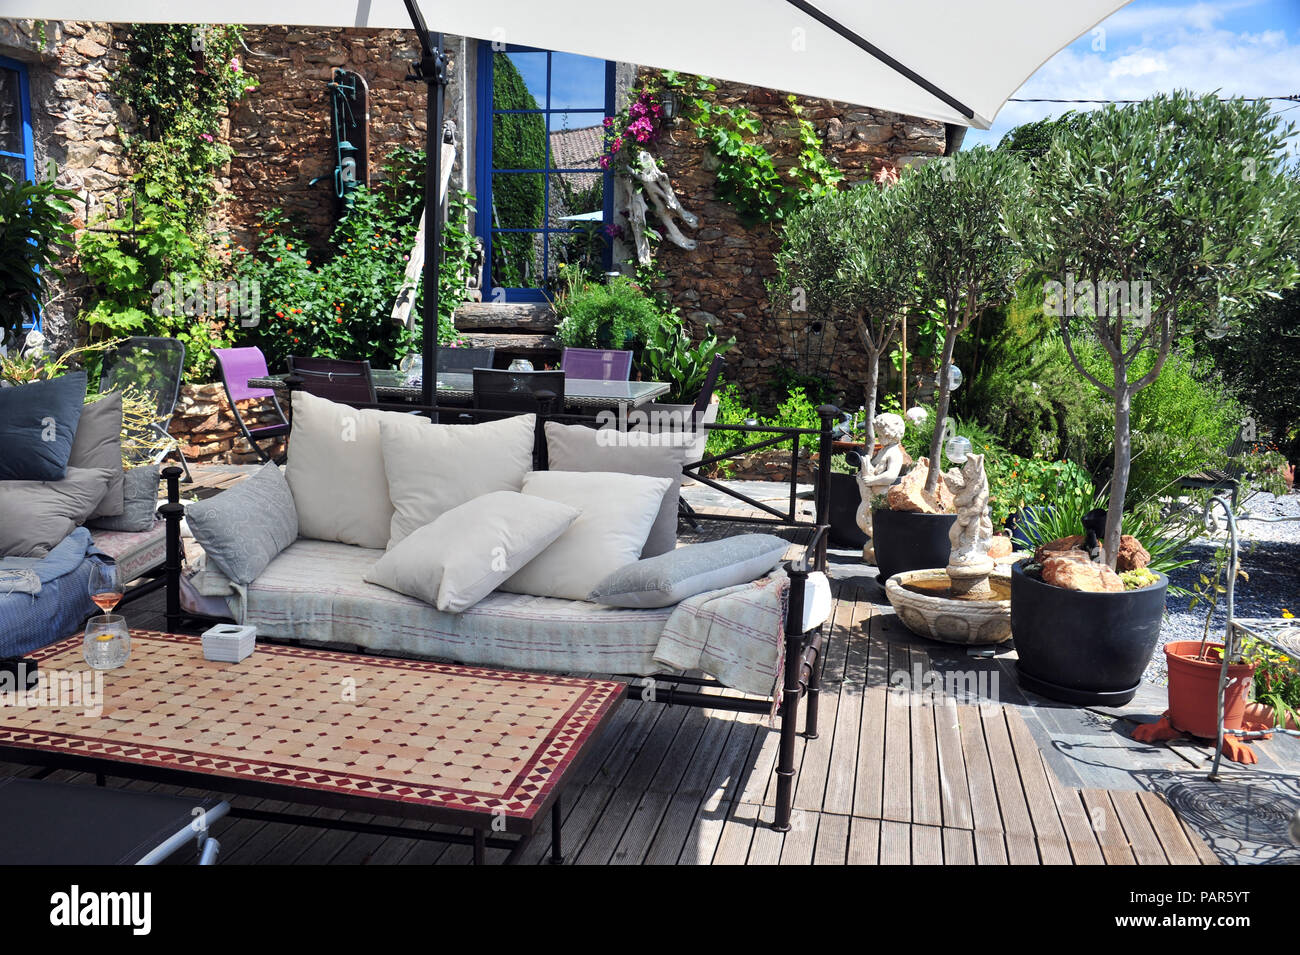 Garden seating area in a wonderful courtyard garden in the South of France. Property released - Stock Image